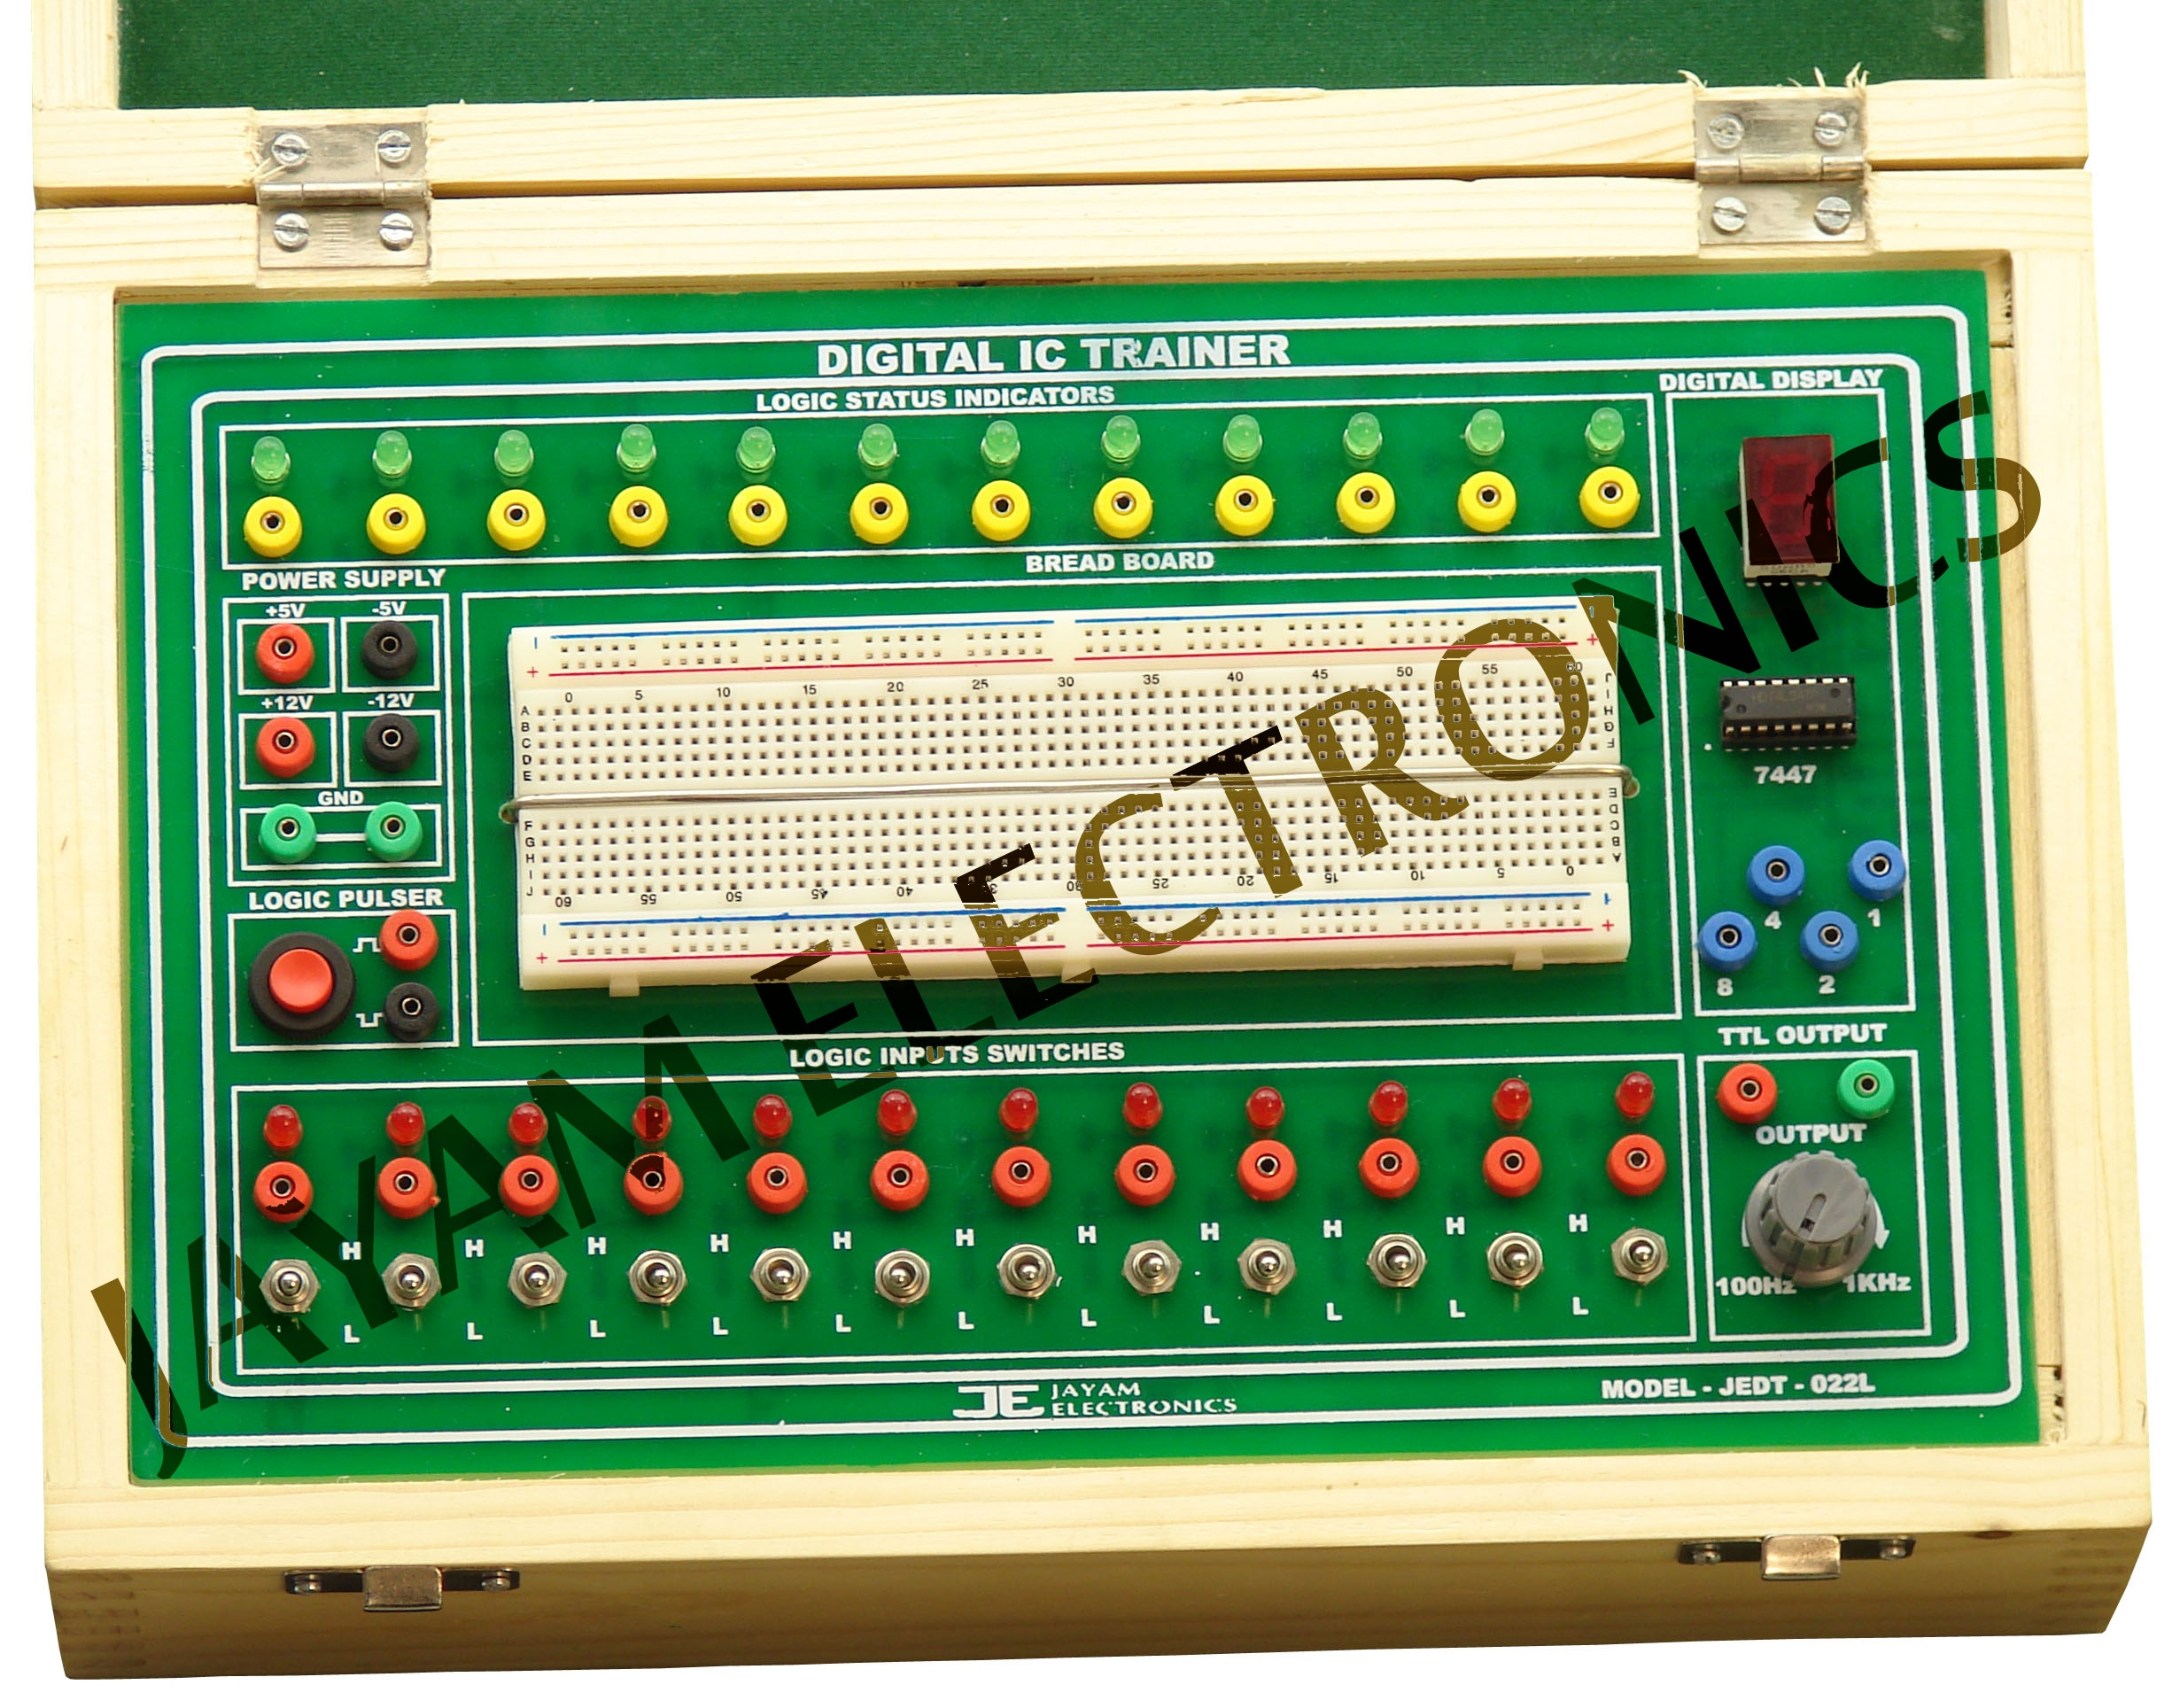 DIGITAL IC TRAINER MODEL: JEDT - 022 L  Contact: +91 9444001354 Send Mail: jayamelectronicsje@gmail.com Visit Our all Product: www.jayamelectronics.com   Fixed output power supply 5V 2A and ±12V 500mA Pulse Generator 100Hz to 1 KHz variable output  High low mono pulse output provided pulse switch  7 Segment LED display BCD 2 Digit Decoder 8 Logic input switches for Provided  H/L Signal 8 Logic status LED indicators  Connecting provision BS2 socket with 15 Patch cords Bread Board 1 No. Overload LED indicator with buzzer indicator and short circuit protection  Cabinet Closed type wood box       Input 230V ±10% 50 Hz AC  Price for Digital IC Trainer Kit IC Trainer Kit Price  Digital IC Trainer Kit Manufacturer in Chennai Digital IC Trainer Kit manufacturer in India Digital IC Trainer Kit Supplier in Chennai Digital IC Trainer Kit Supplier in India Supplier for Digital IC Trainer Kit in Chennai Supplier for Digital IC Trainer Kit in India Digital IC Trainer Kit price Digital IC Trainer Kit service center in Chennai Digital IC Trainer Kit service center in Tamil Nadu   Digital IC Trainer Kit Manufacturer in Chennai JAYAM Electronics Digital IC Trainer Kit manufacturer in India JAYAM Electronics Digital IC Trainer Kit Supplier in Chennai JAYAM Electronics Digital IC Trainer Kit Supplier in India JAYAM Electronics Digital IC Trainer Kit JAYAM Electronics Manufacturing Company of Digital IC Trainer Kit JAYAM Electronics Digital IC Trainer Kit service center in Chennai JAYAM Electronics Digital IC Trainer Kit service center in Tamil Nadu JAYAM Electronics